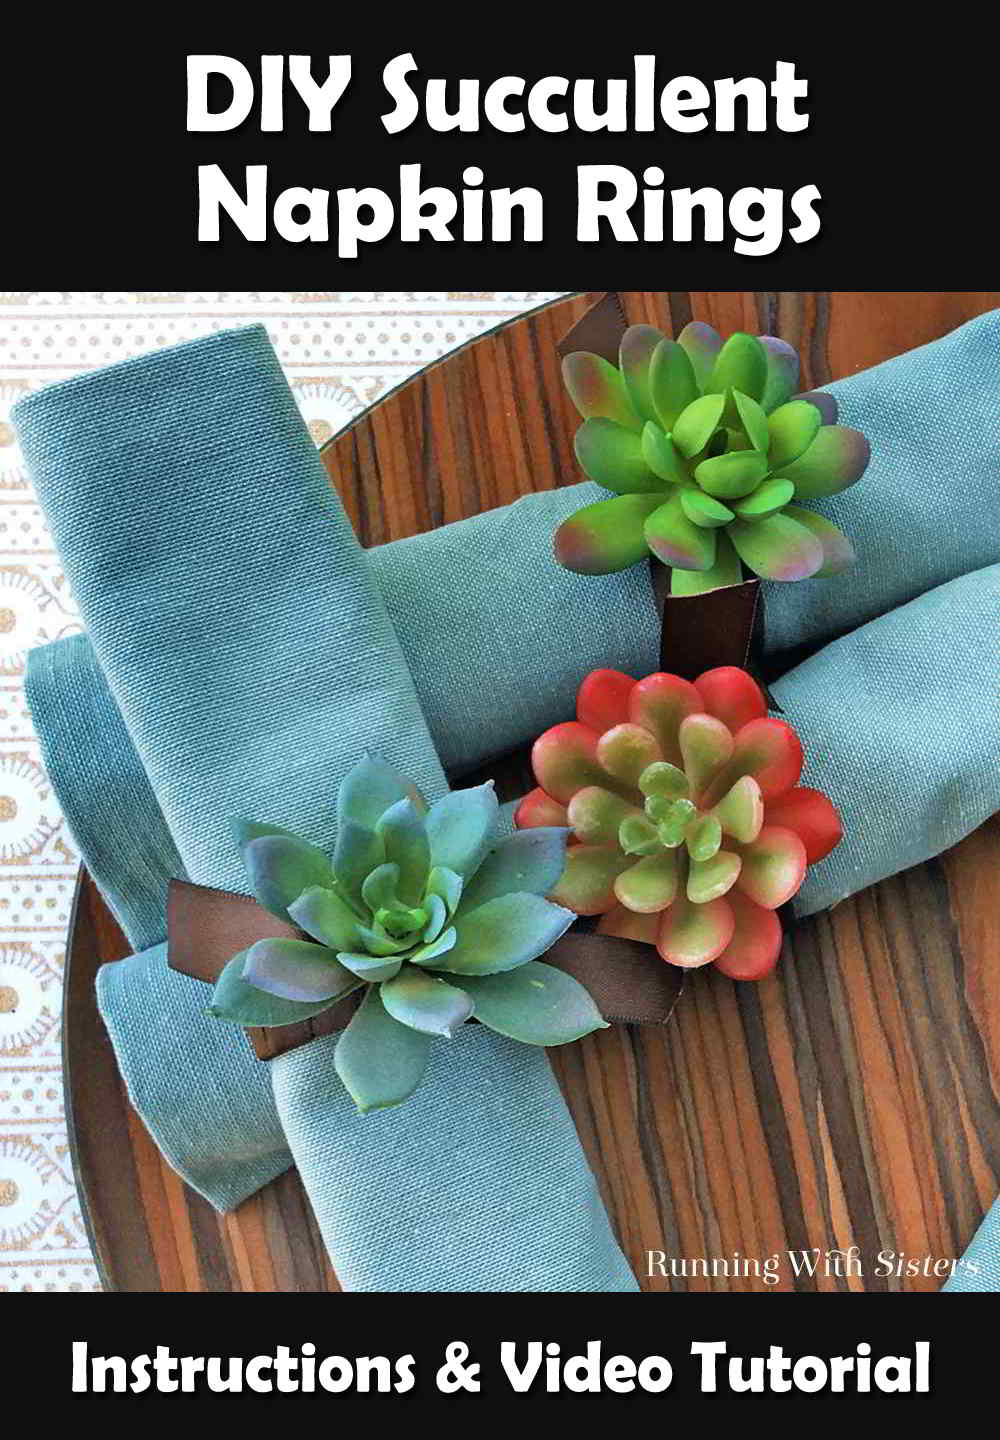 Turn dollar store succulents into Succulent Napkin Rings. We'll show you how with this DIY Succulent Craft video tutorial.